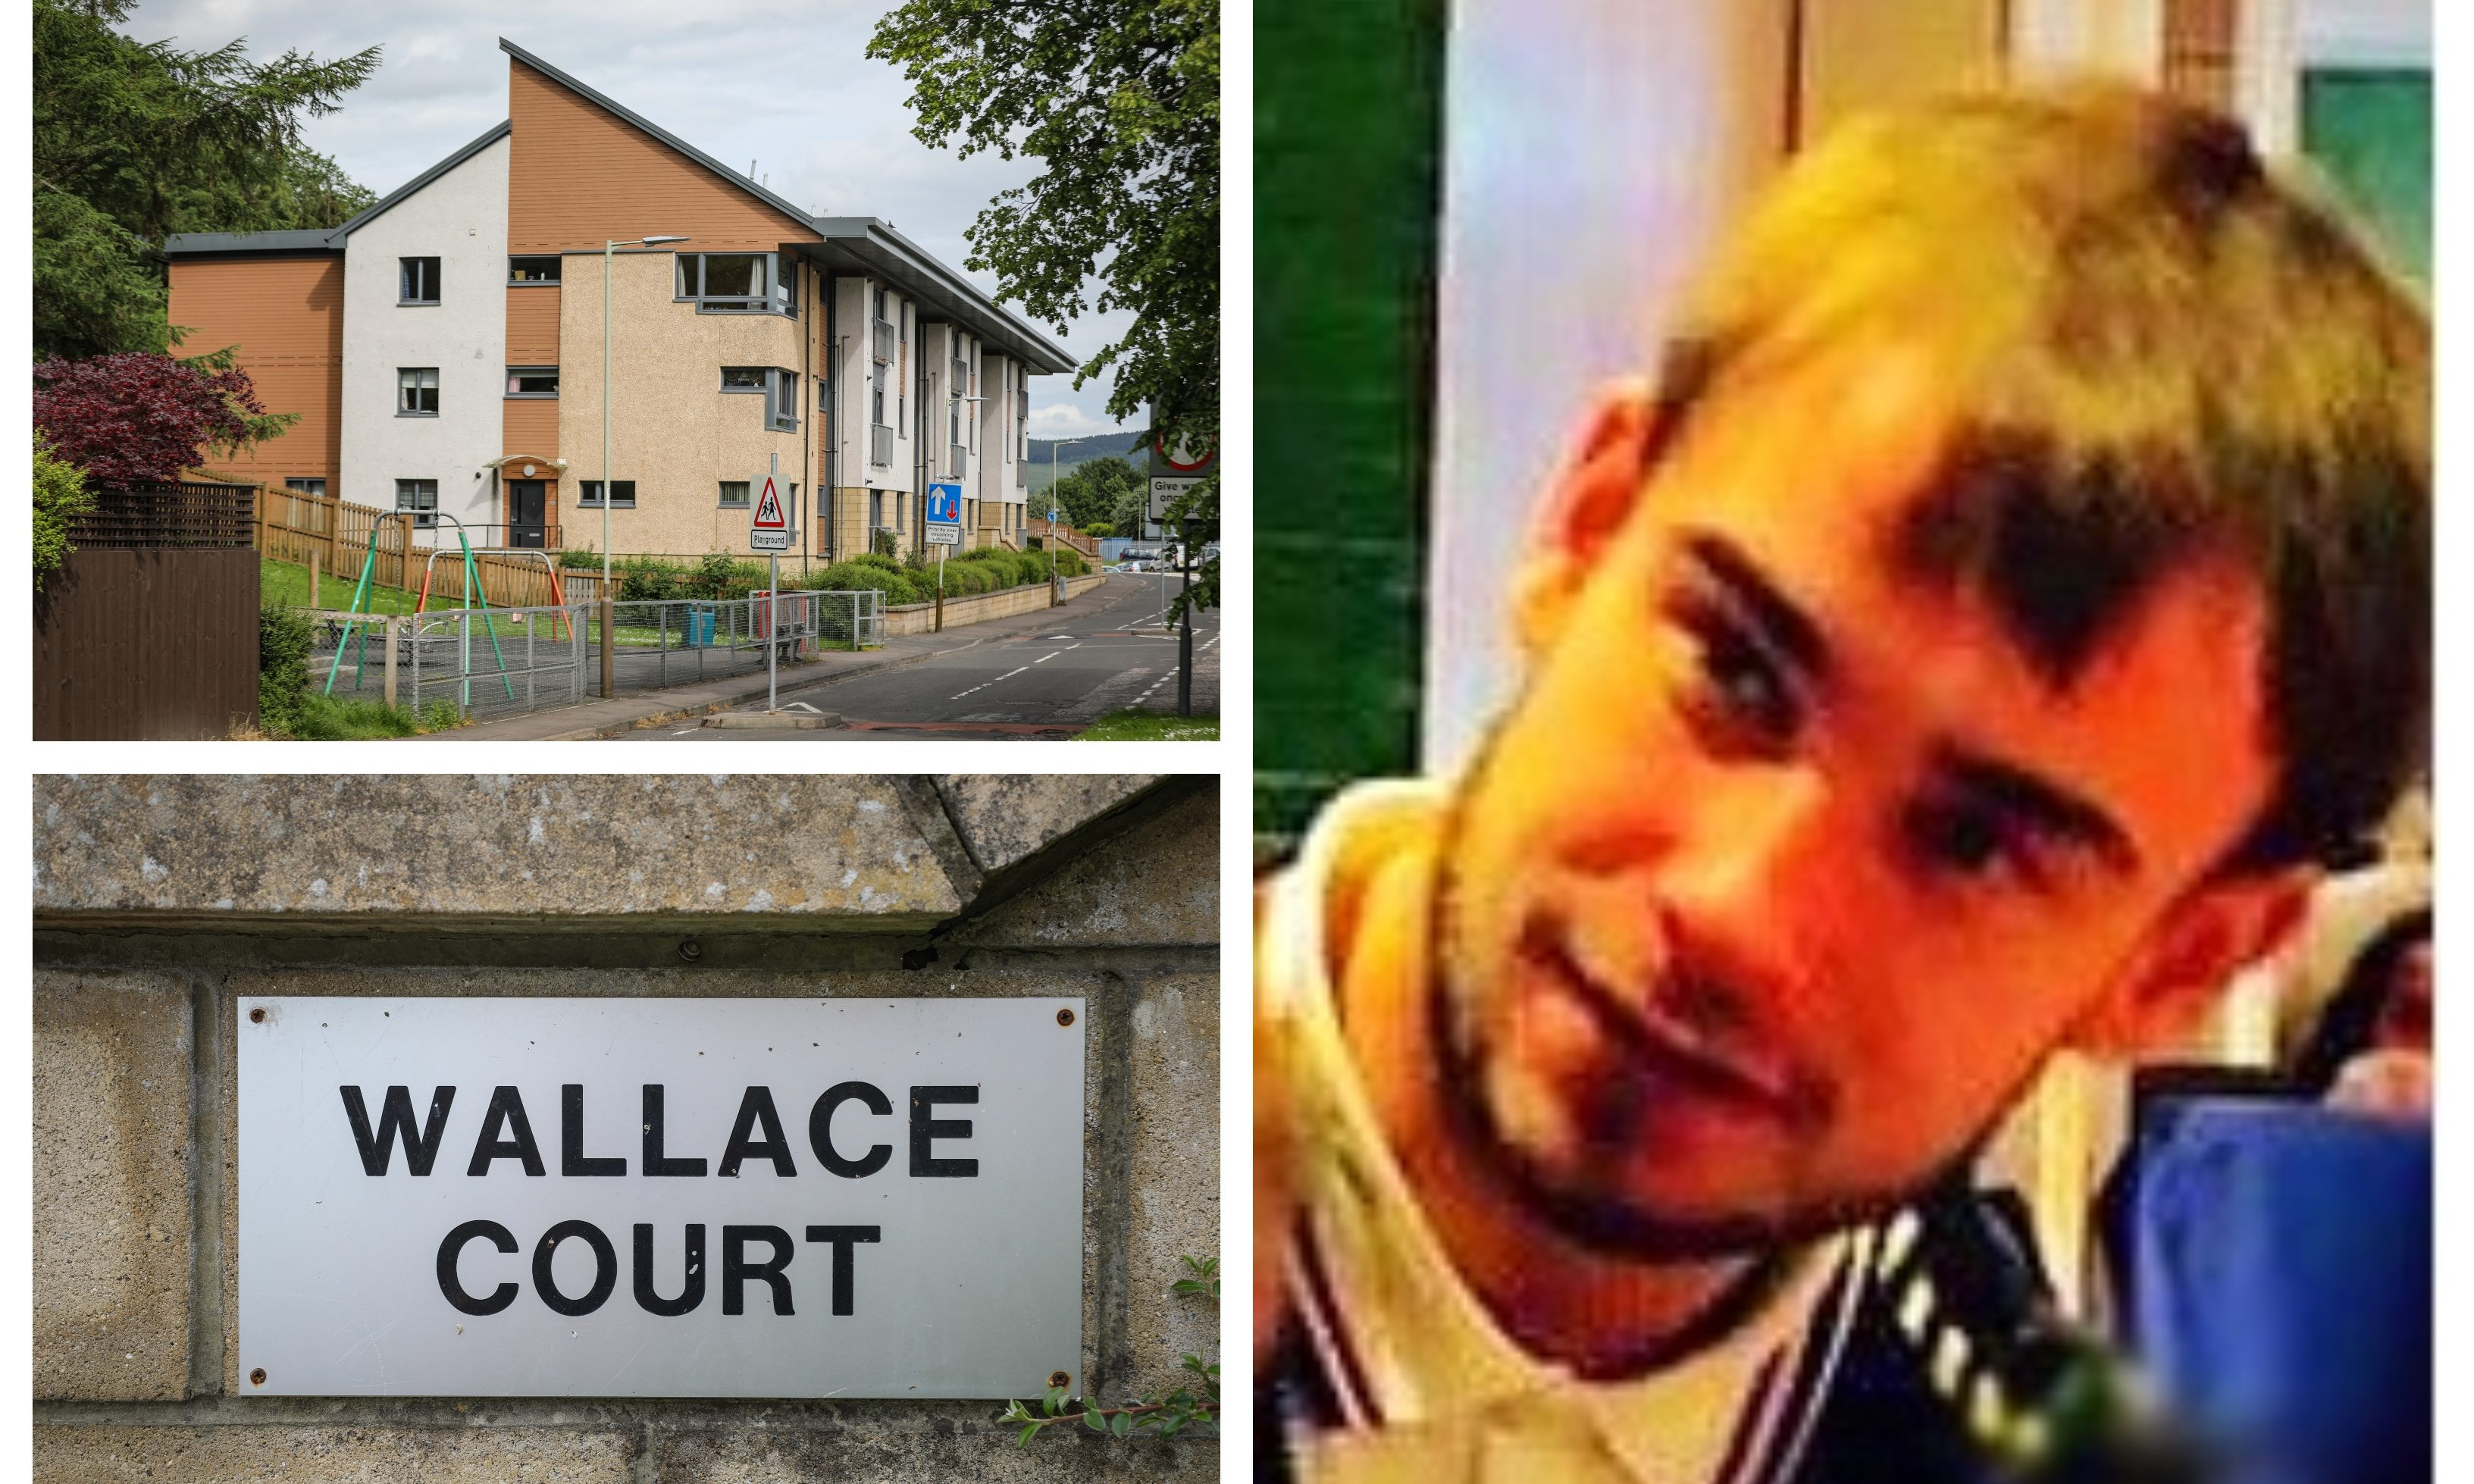 Barry Dixon died in hospital after being found injured in Wallace Court.